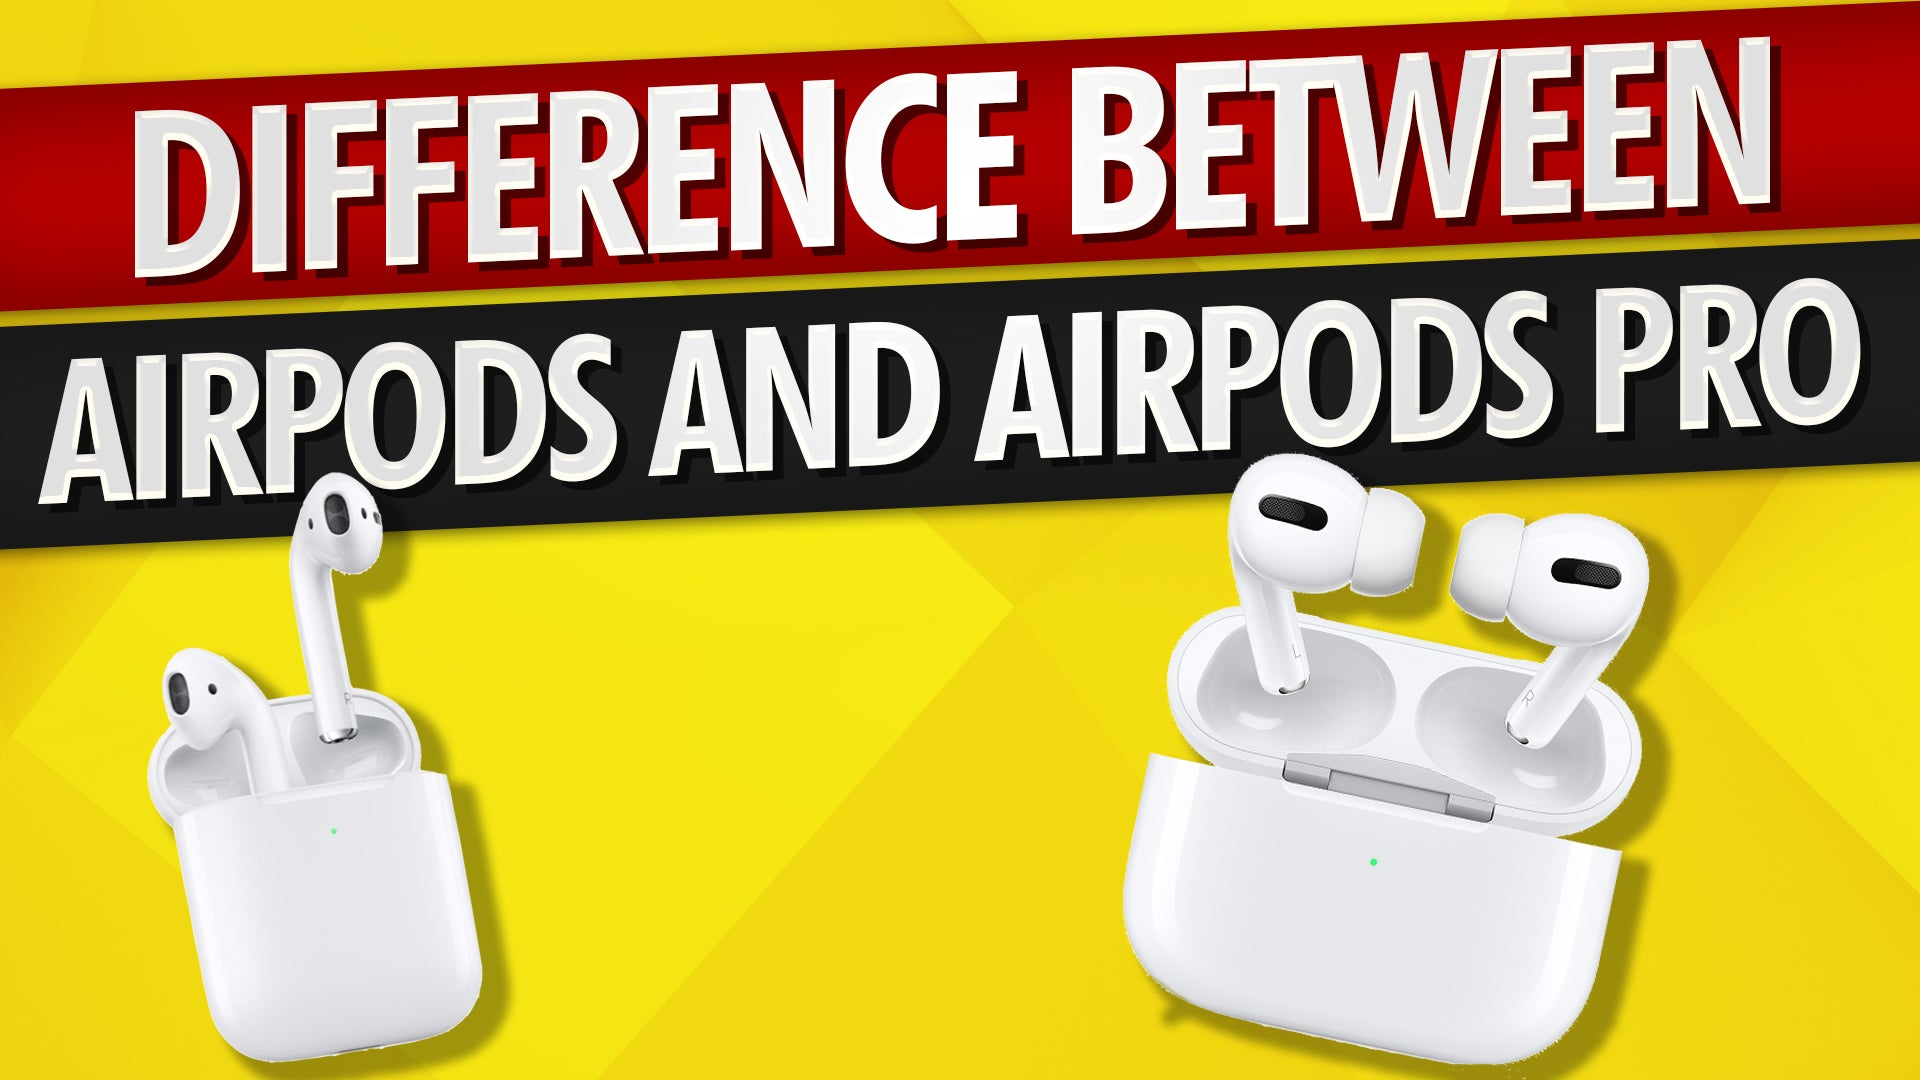 AirPods vs. AirPods Pro